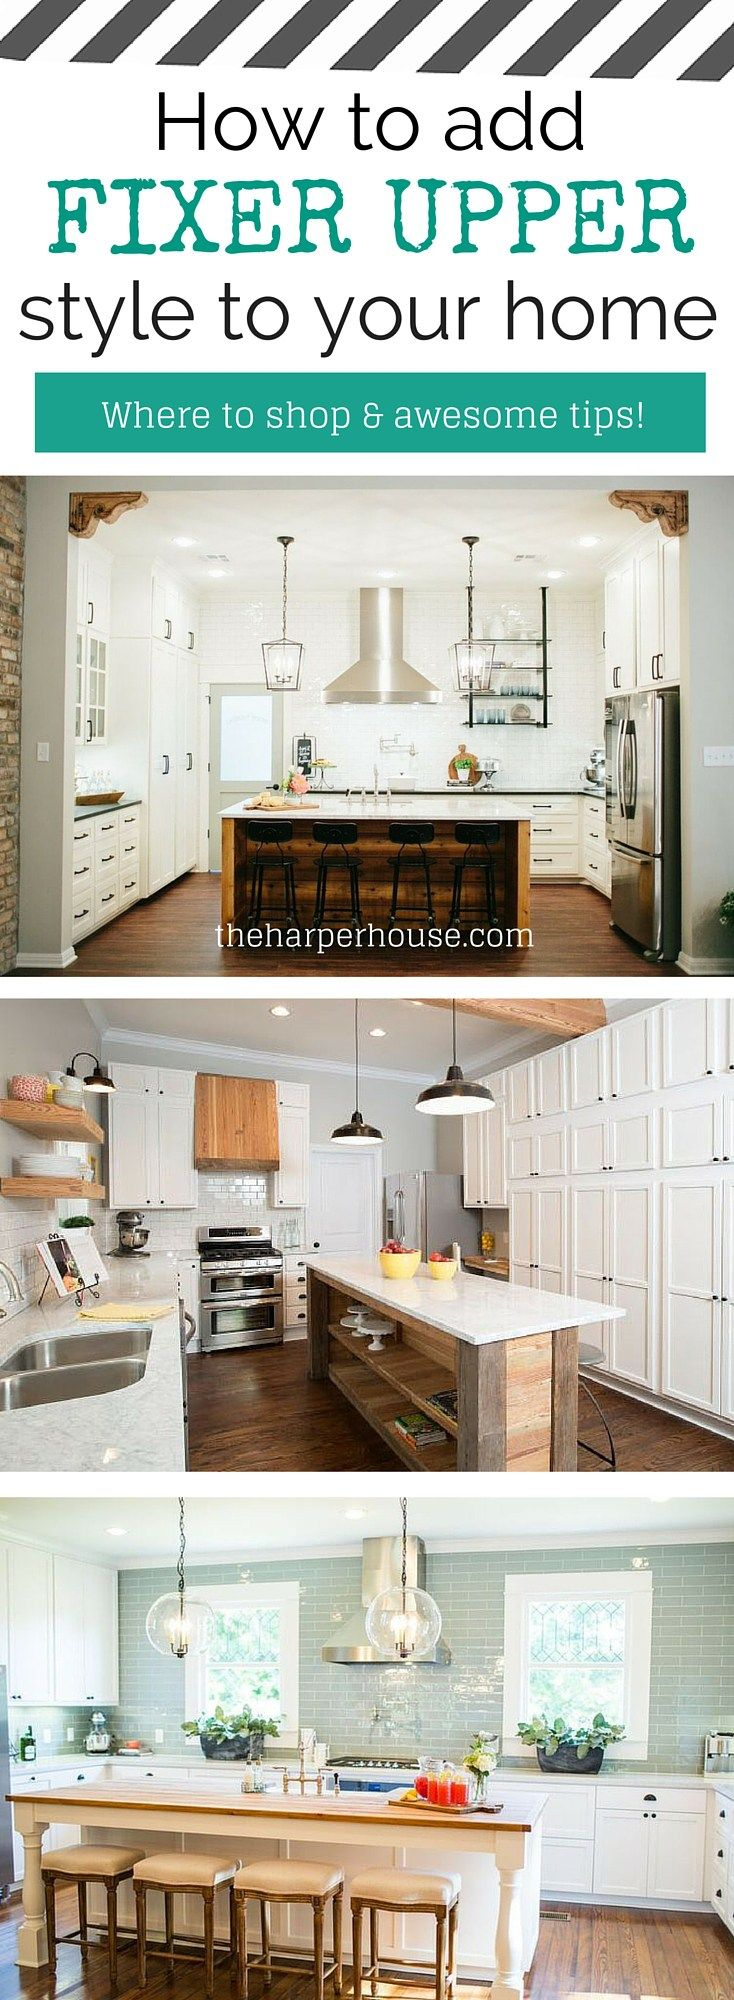 17 Best Images About Fixer Upper Joanna Gaines Magnolia